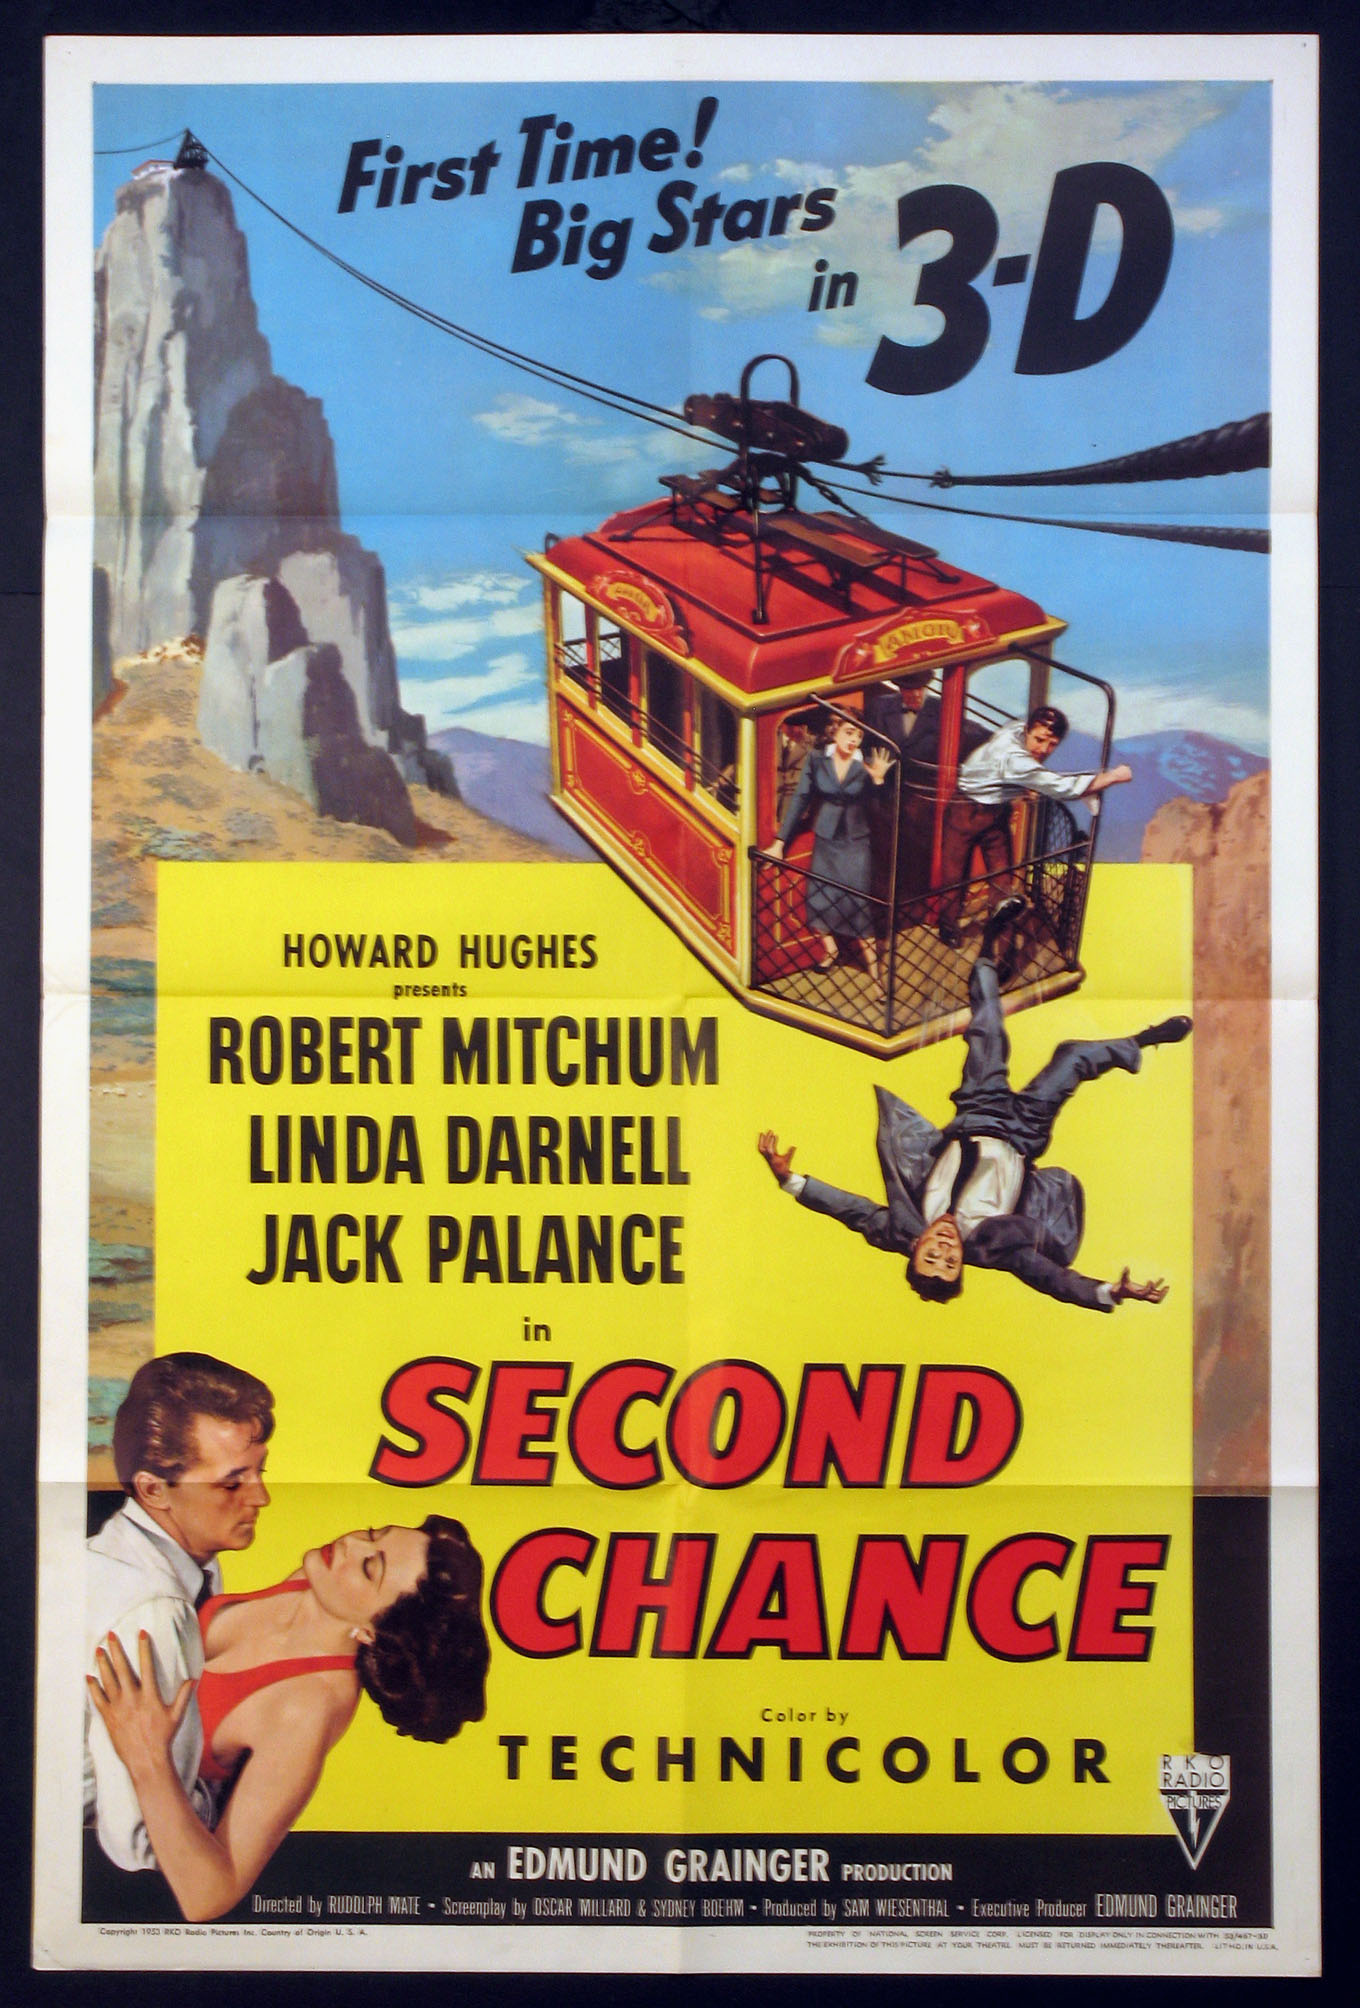 SECOND CHANCE @ FilmPosters.com